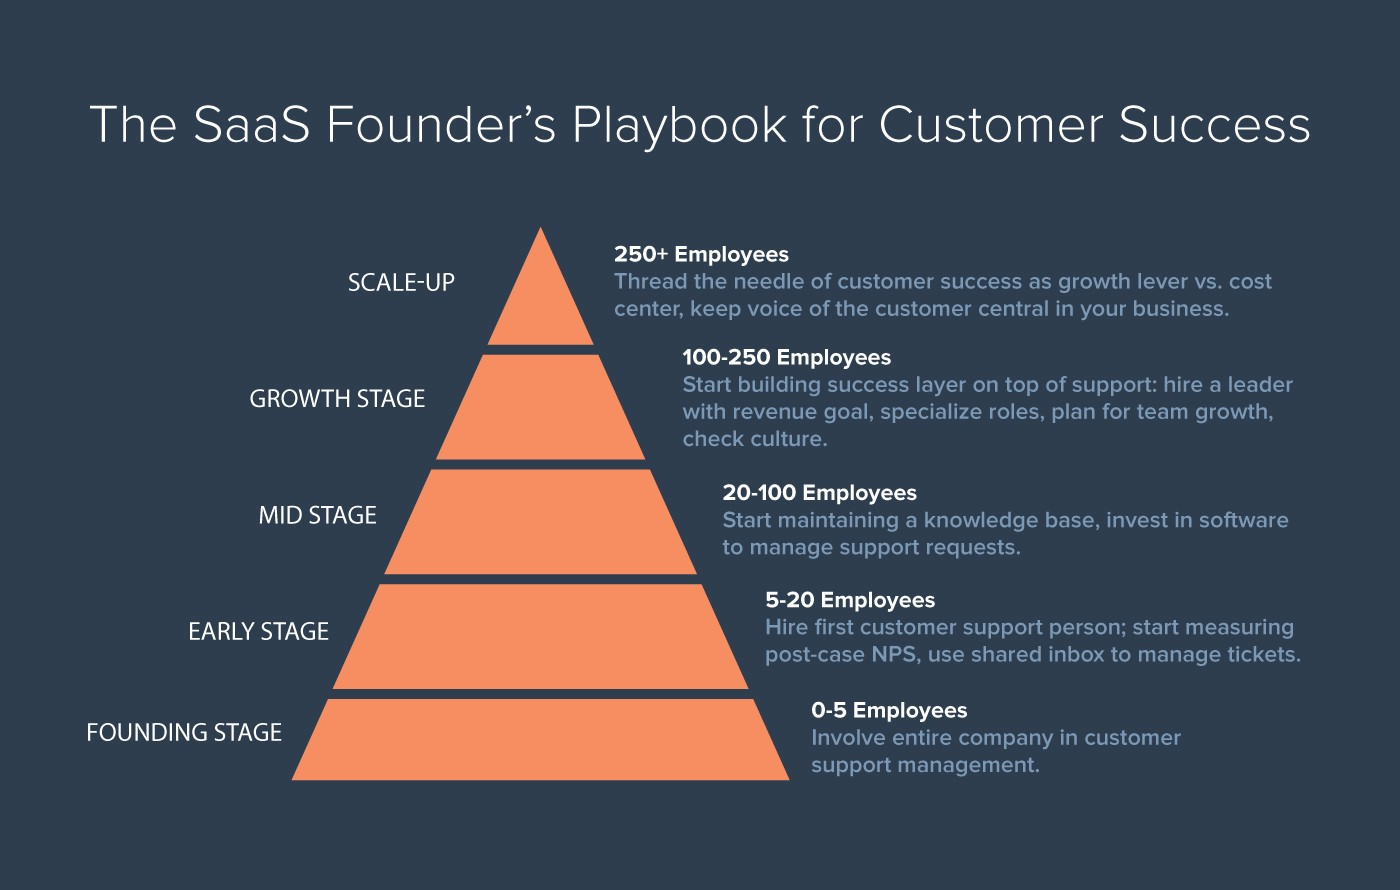 The SaaS Founder's Playbook For Customer Success